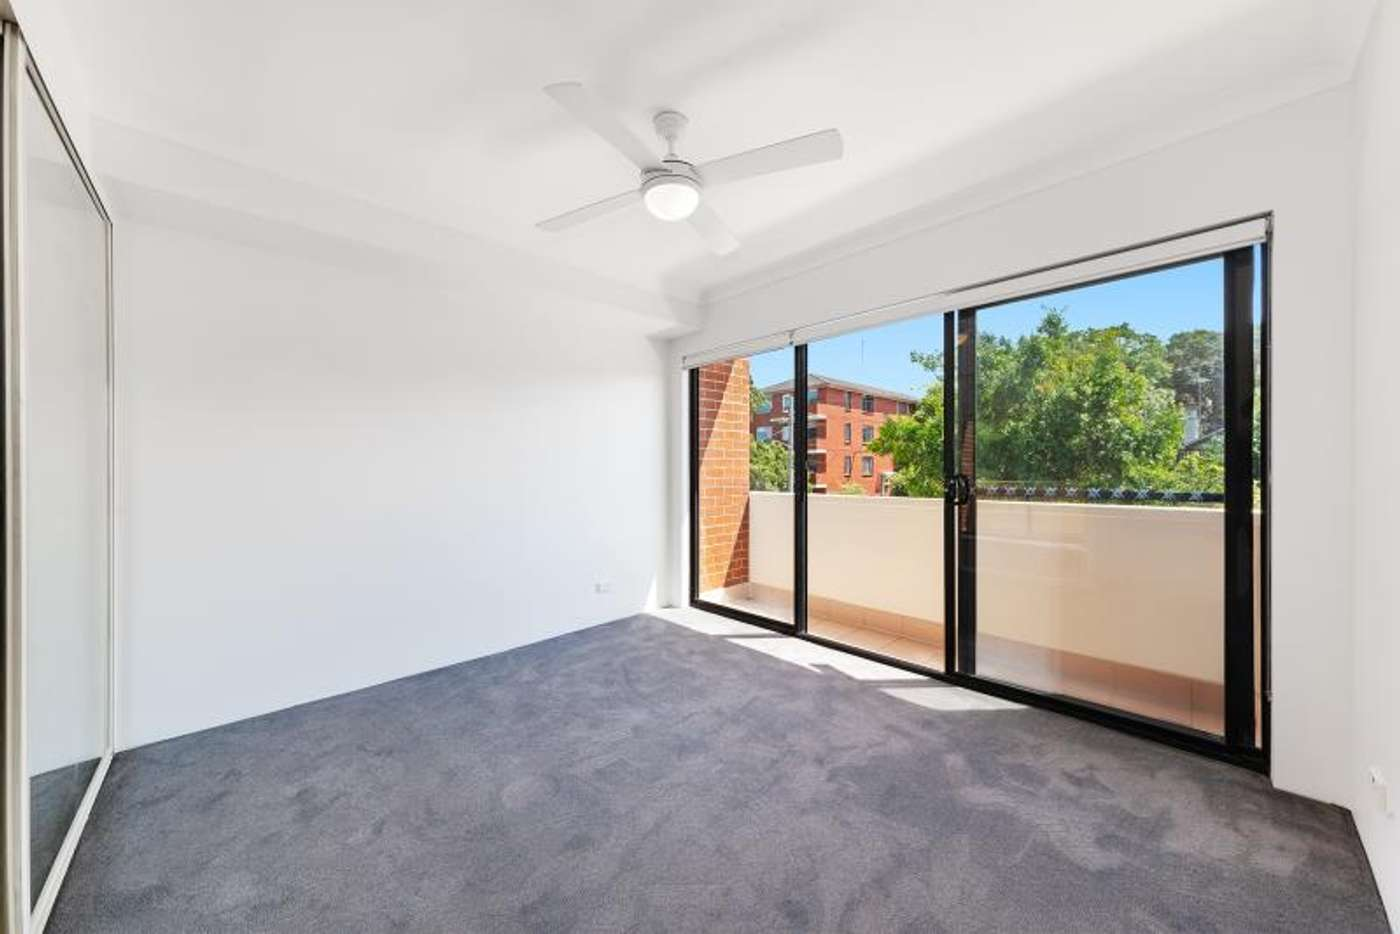 Main view of Homely apartment listing, 10/17-21 Villiers Street, Kensington NSW 2033